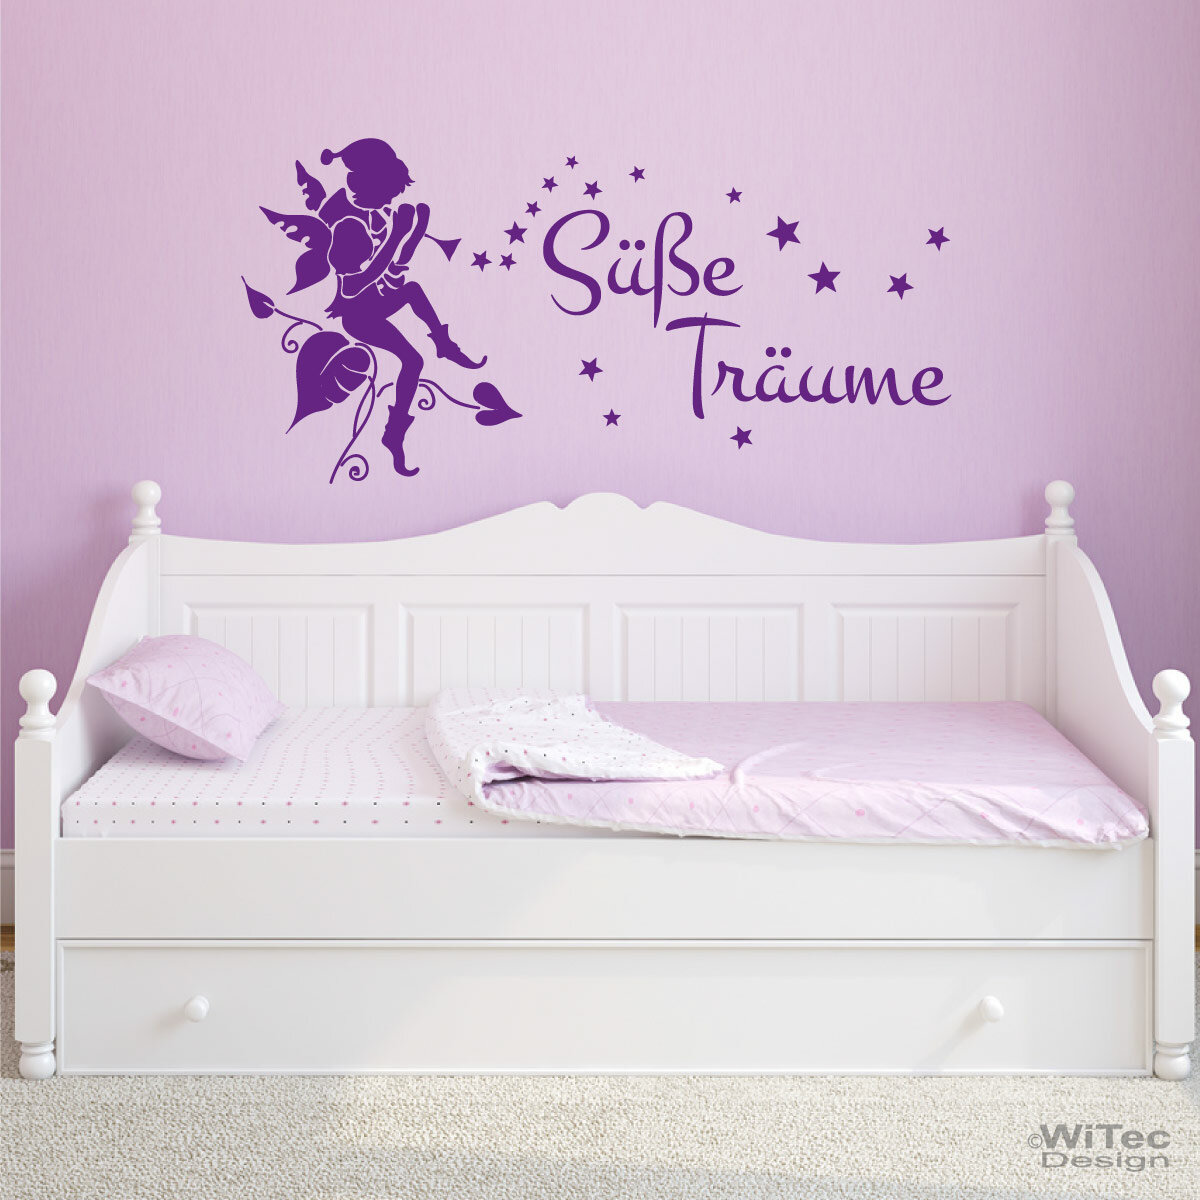 wandtattoo kinderzimmer s e tr ume. Black Bedroom Furniture Sets. Home Design Ideas